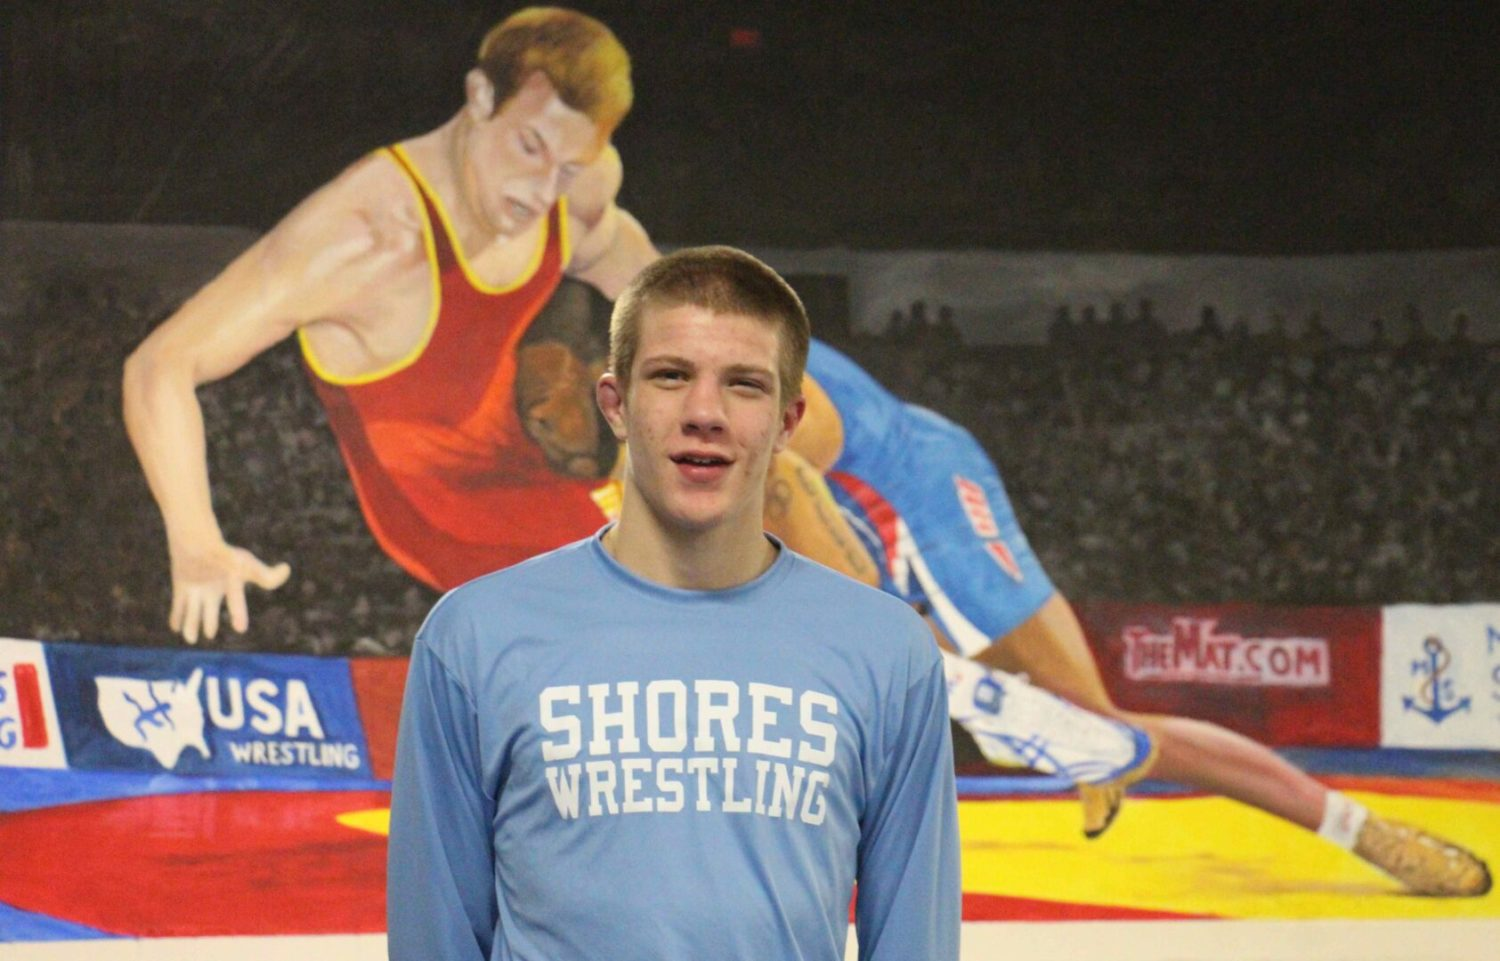 After getting a taste of success last year, Mona Shores' Sam Karel is ready to make his push for state wrestling honors